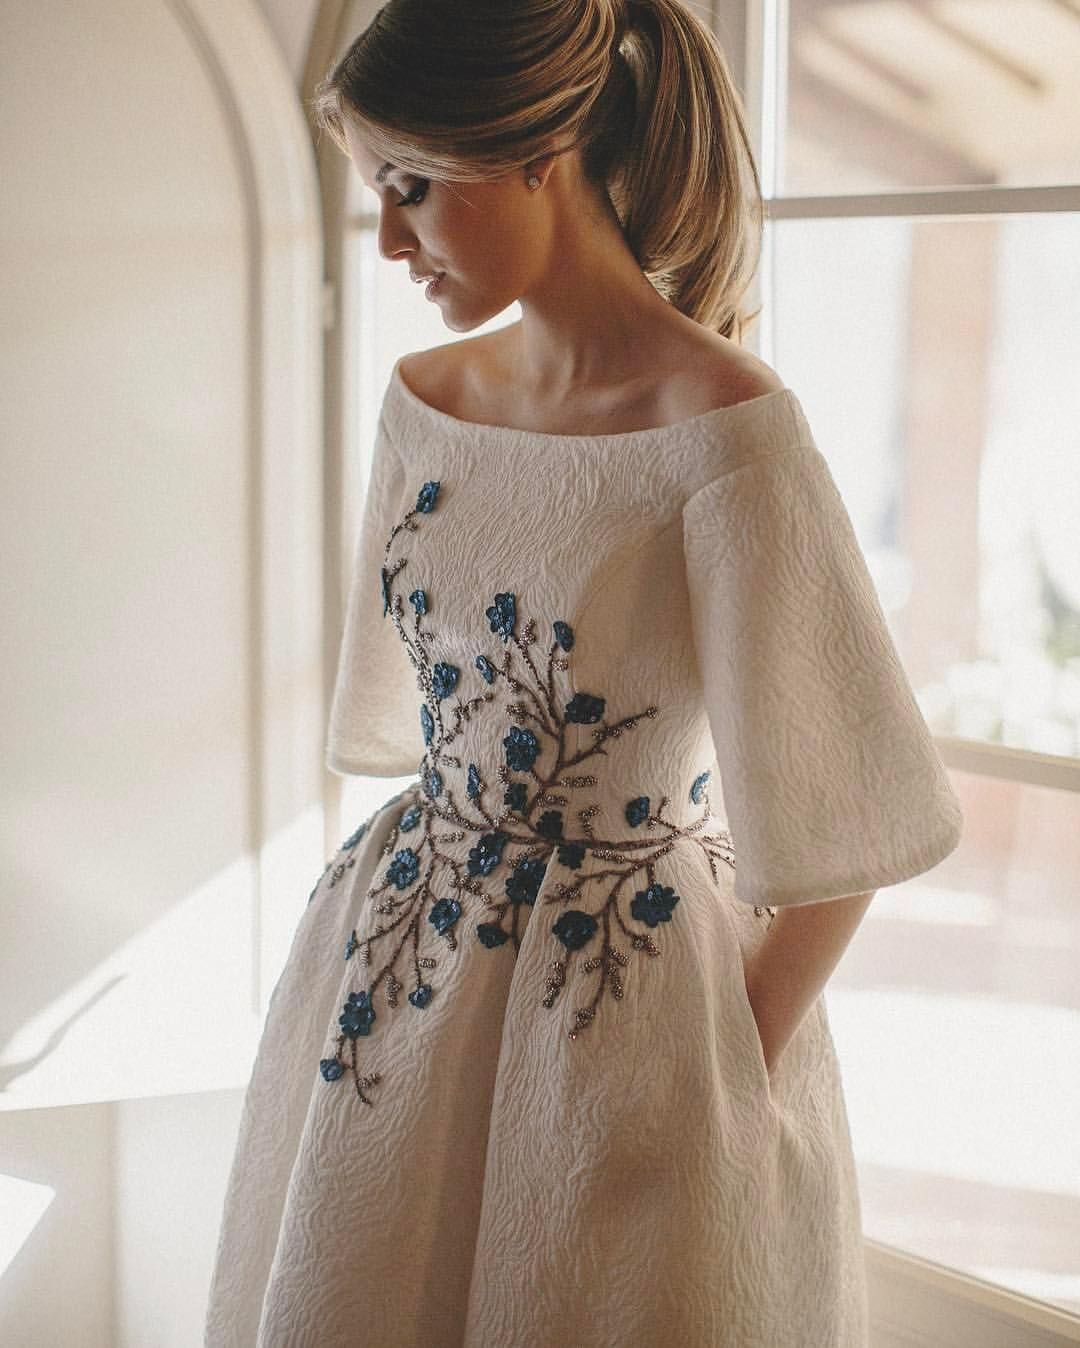 Sound of music wedding dress  Pin by Emma Ross on dress details  Pinterest  Silhouettes